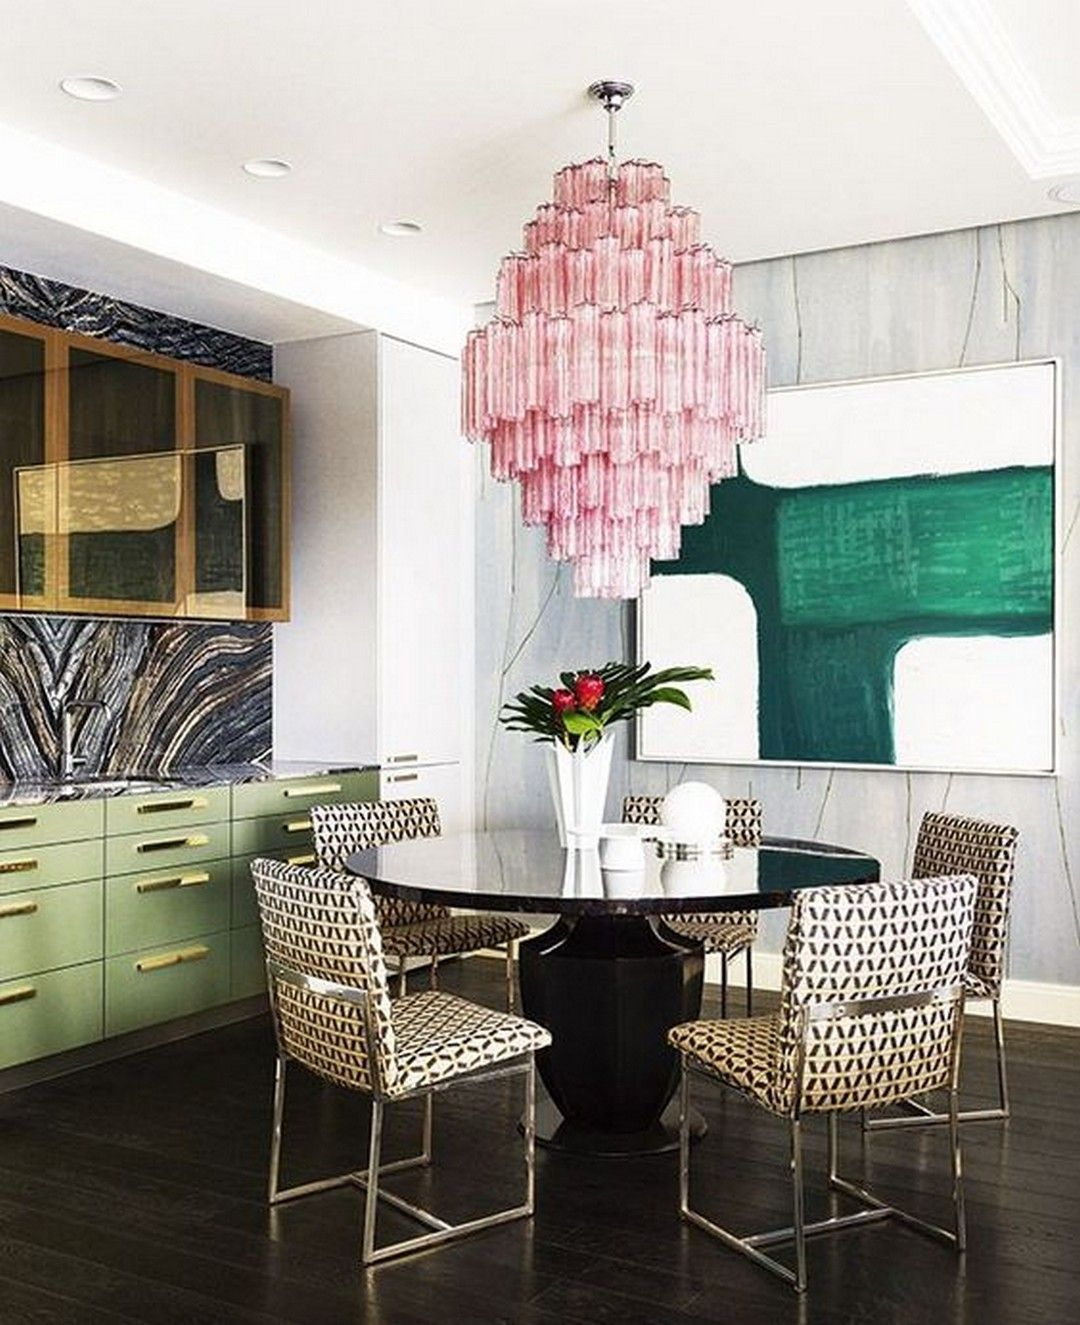 126 Custom Luxury Dining Room Interior Designs: Pin By Becca Murray On Dining Room In 2019